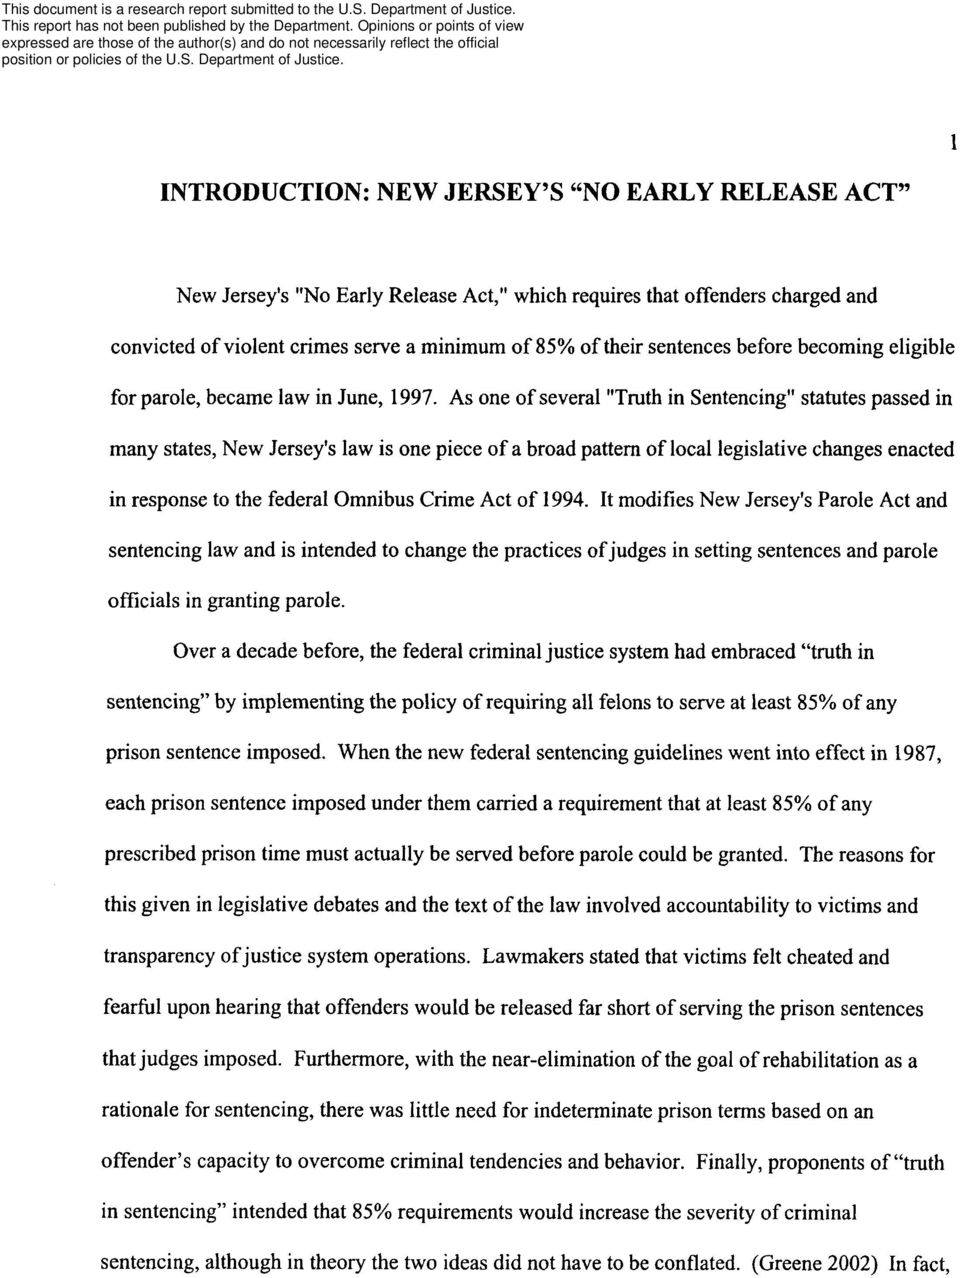 As one of several Truth in Sentencing statutes passed in many states, New Jersey s law is one piece of a broad pattern of local legislative changes enacted in response to the federal Omnibus Crime